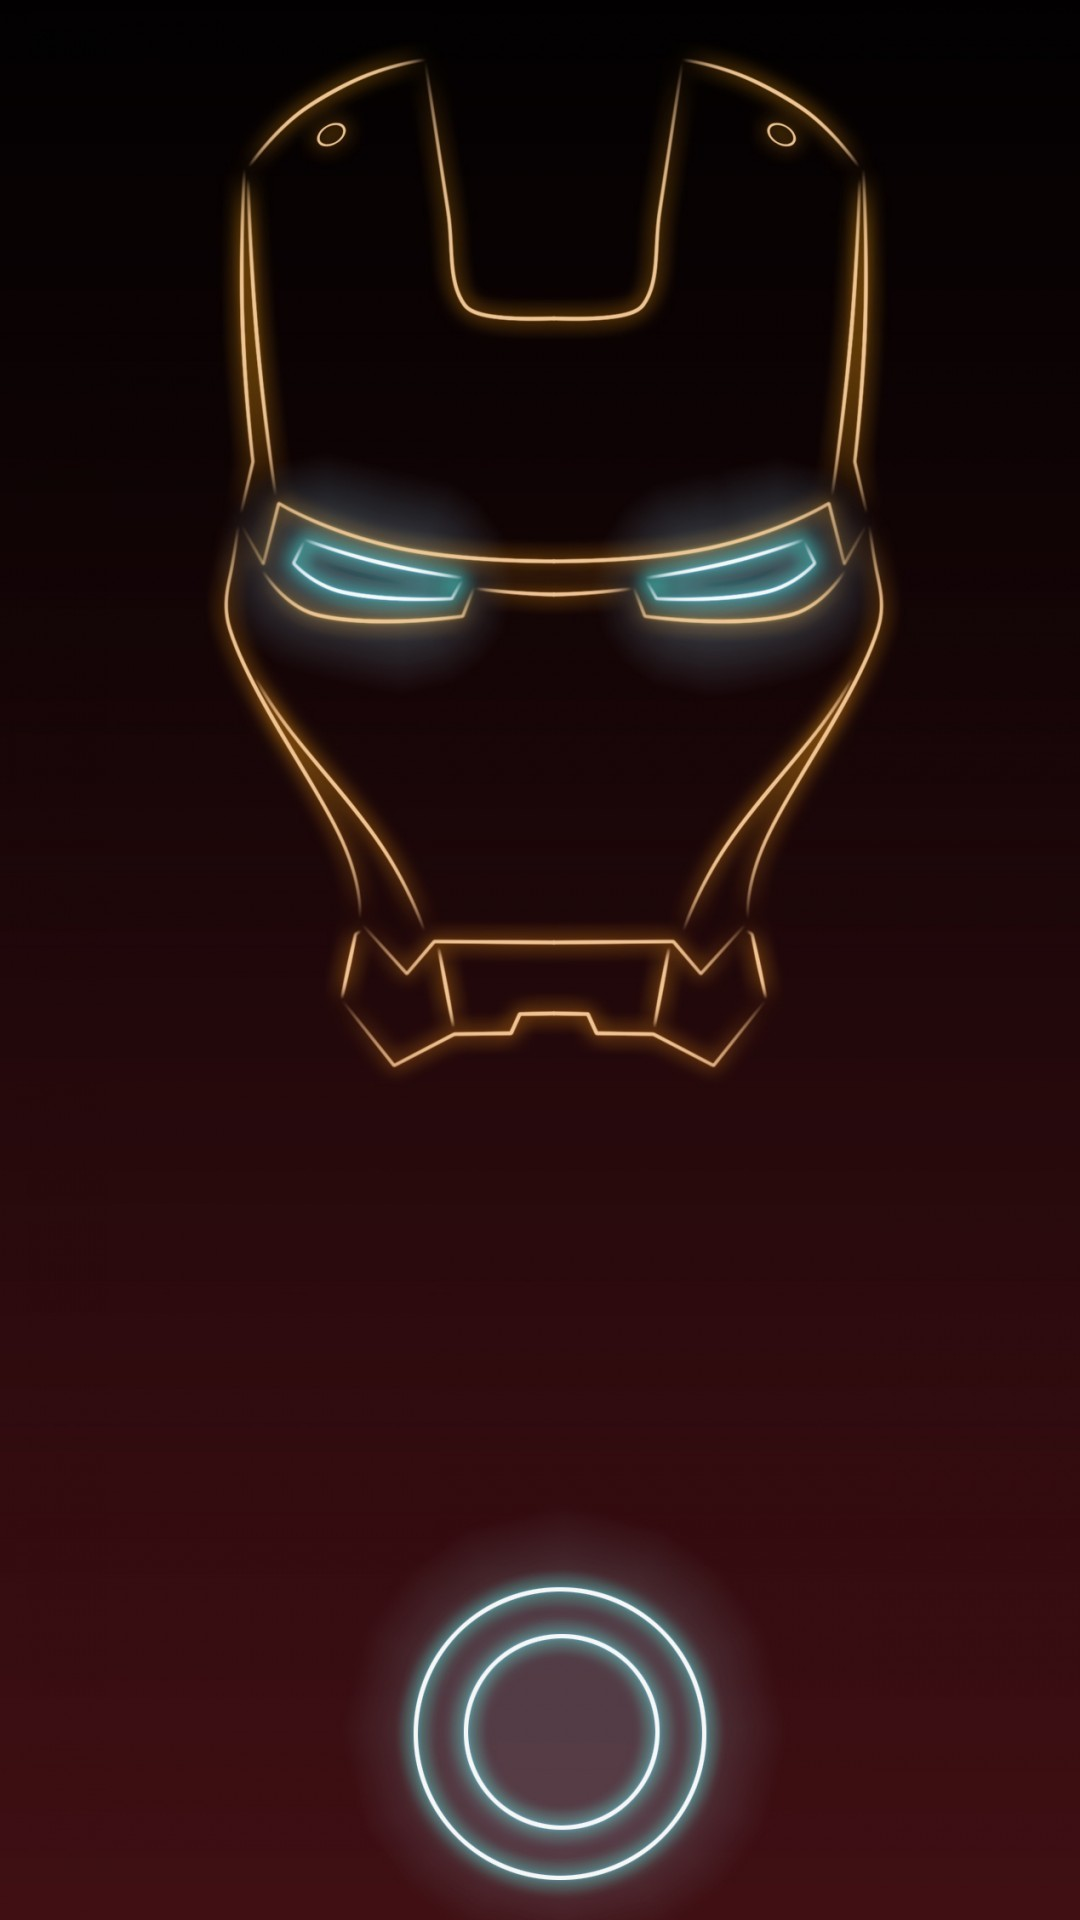 Iron Man Wallpapers Iphone movie Wallpaper | HD Wallpapers | Pinterest |  Iron man wallpaper, Man wallpaper and Wallpaper